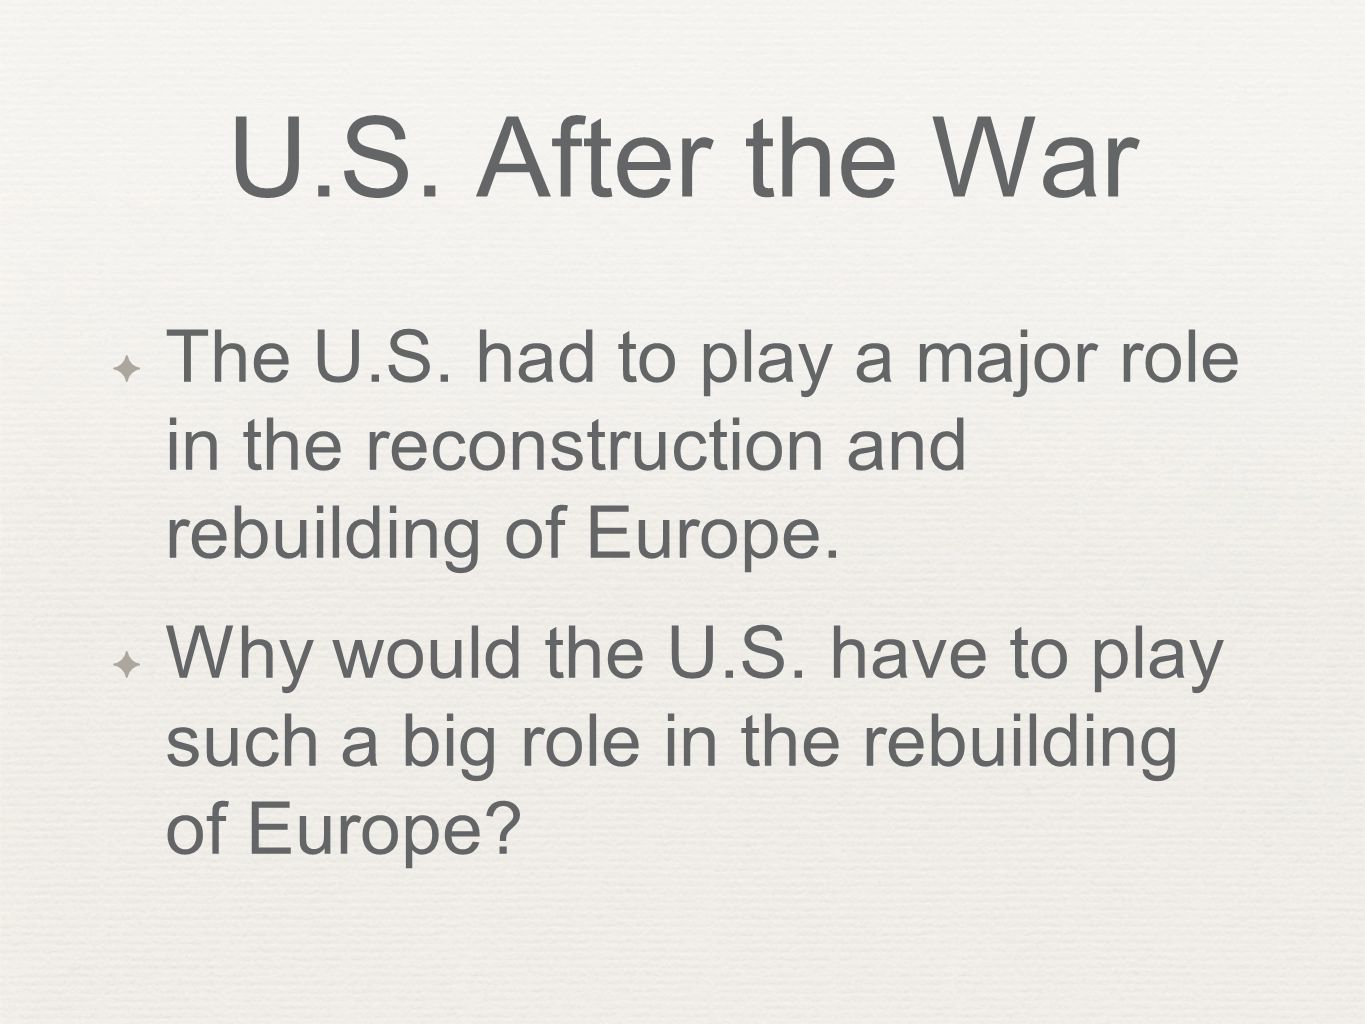 U.S. After the War The U.S. had to play a major role in the reconstruction and rebuilding of Europe.